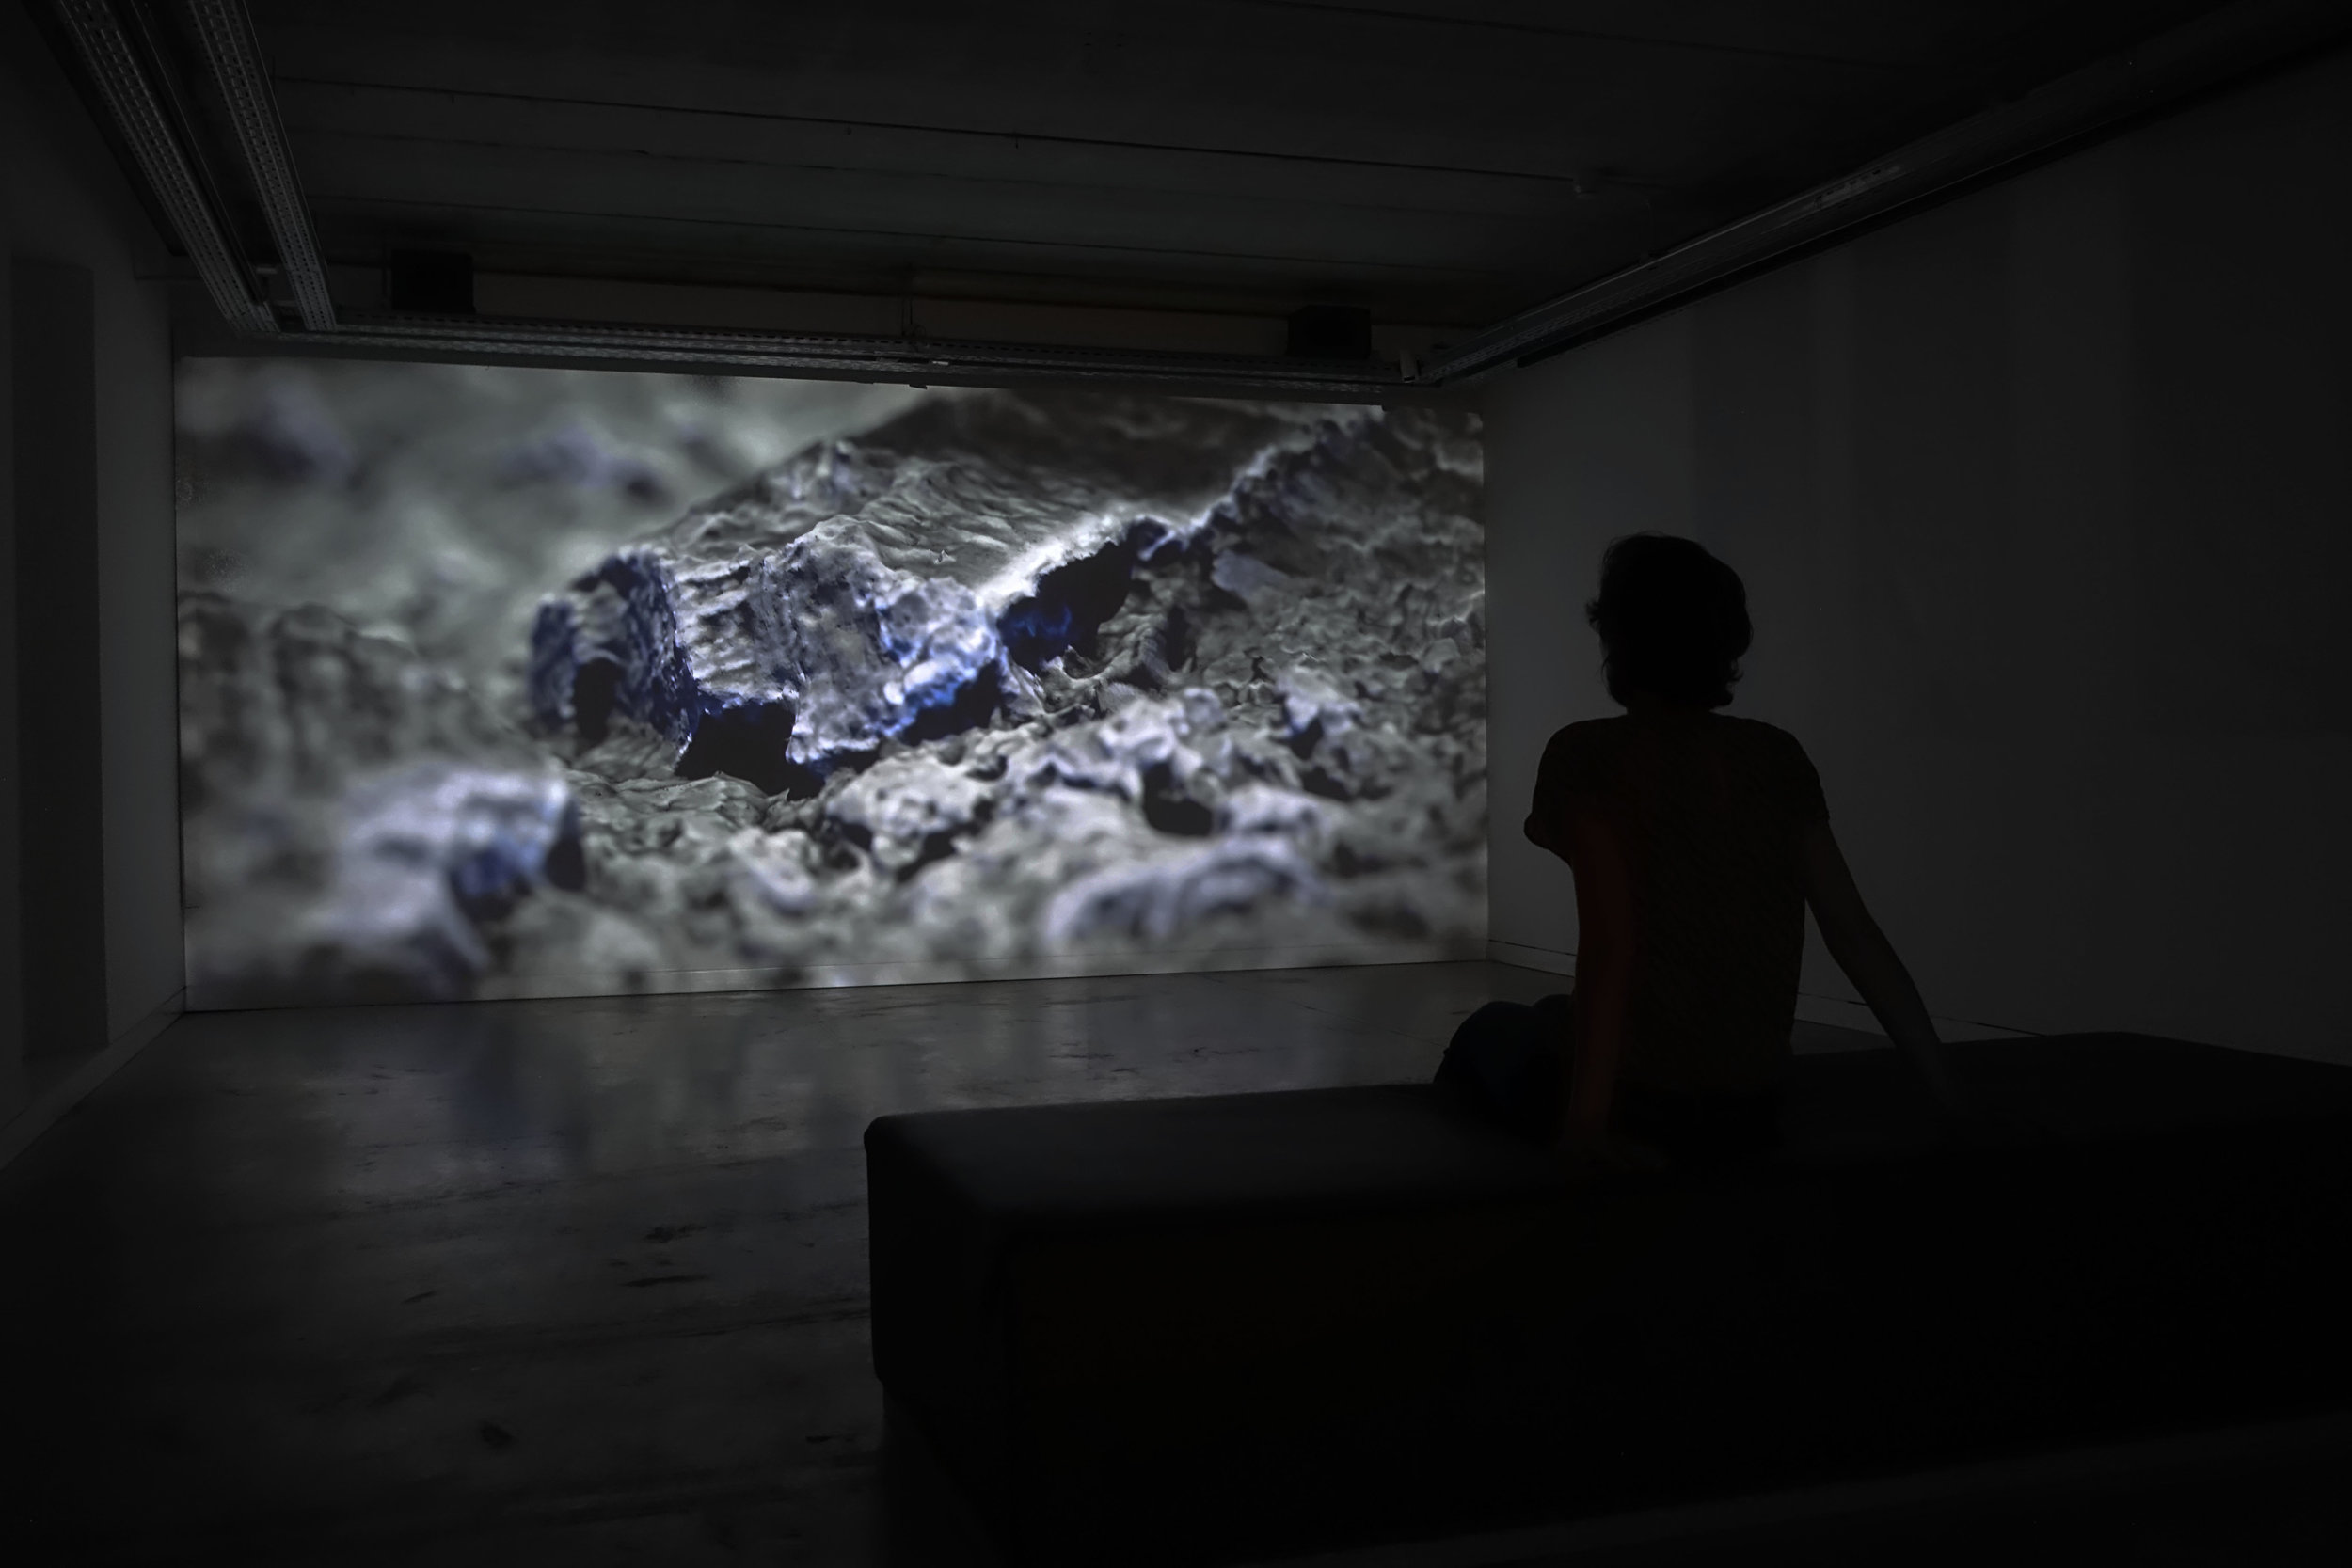 S+T+ARTSRESIDENCIES - SCI-FI MINERS, the miners of the future…